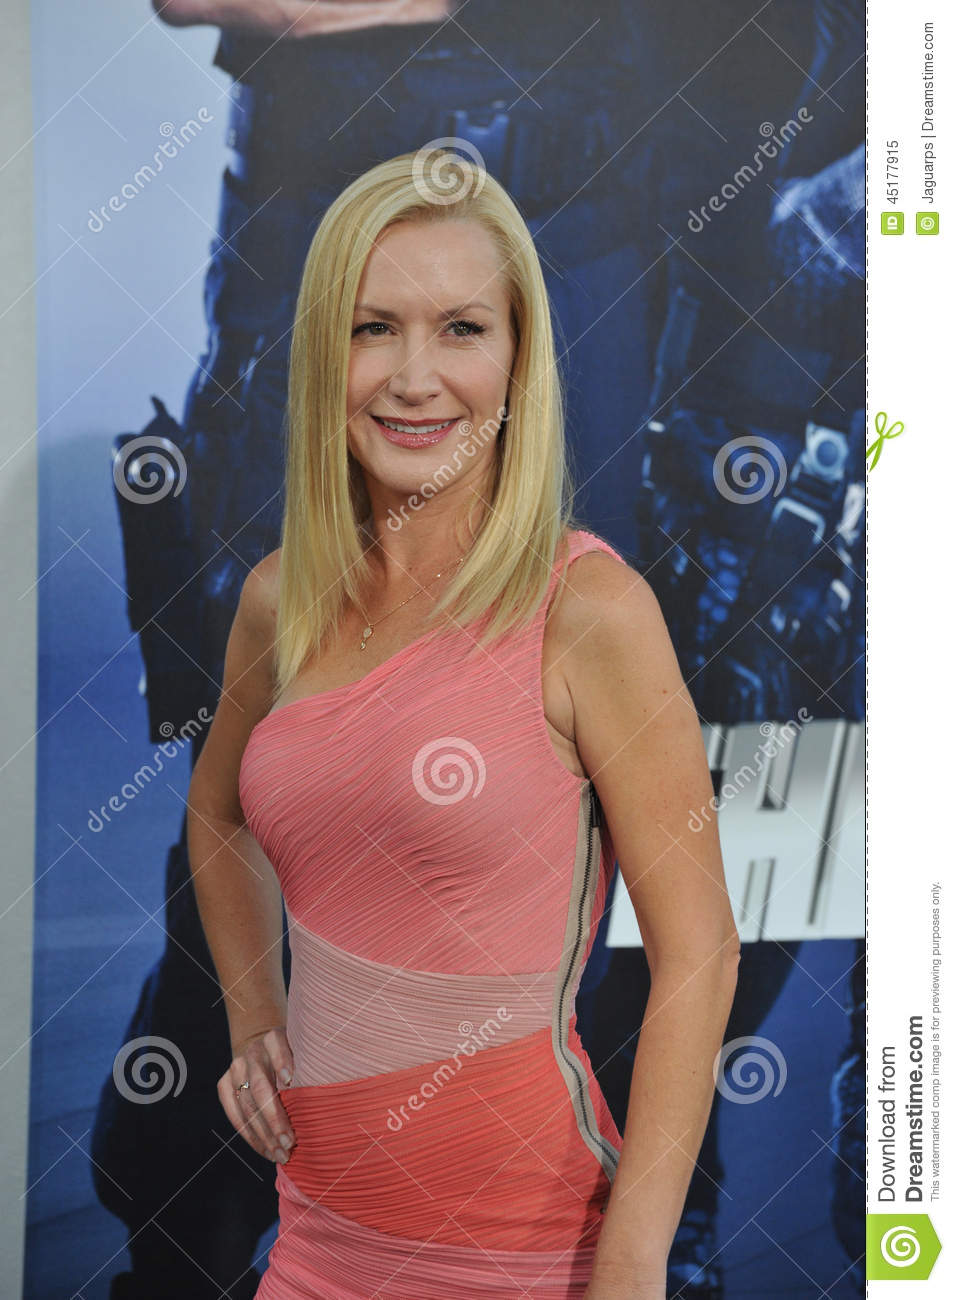 Angela Kinsey Nude Photos nude angela kinsey (85 photos) pussy, instagram